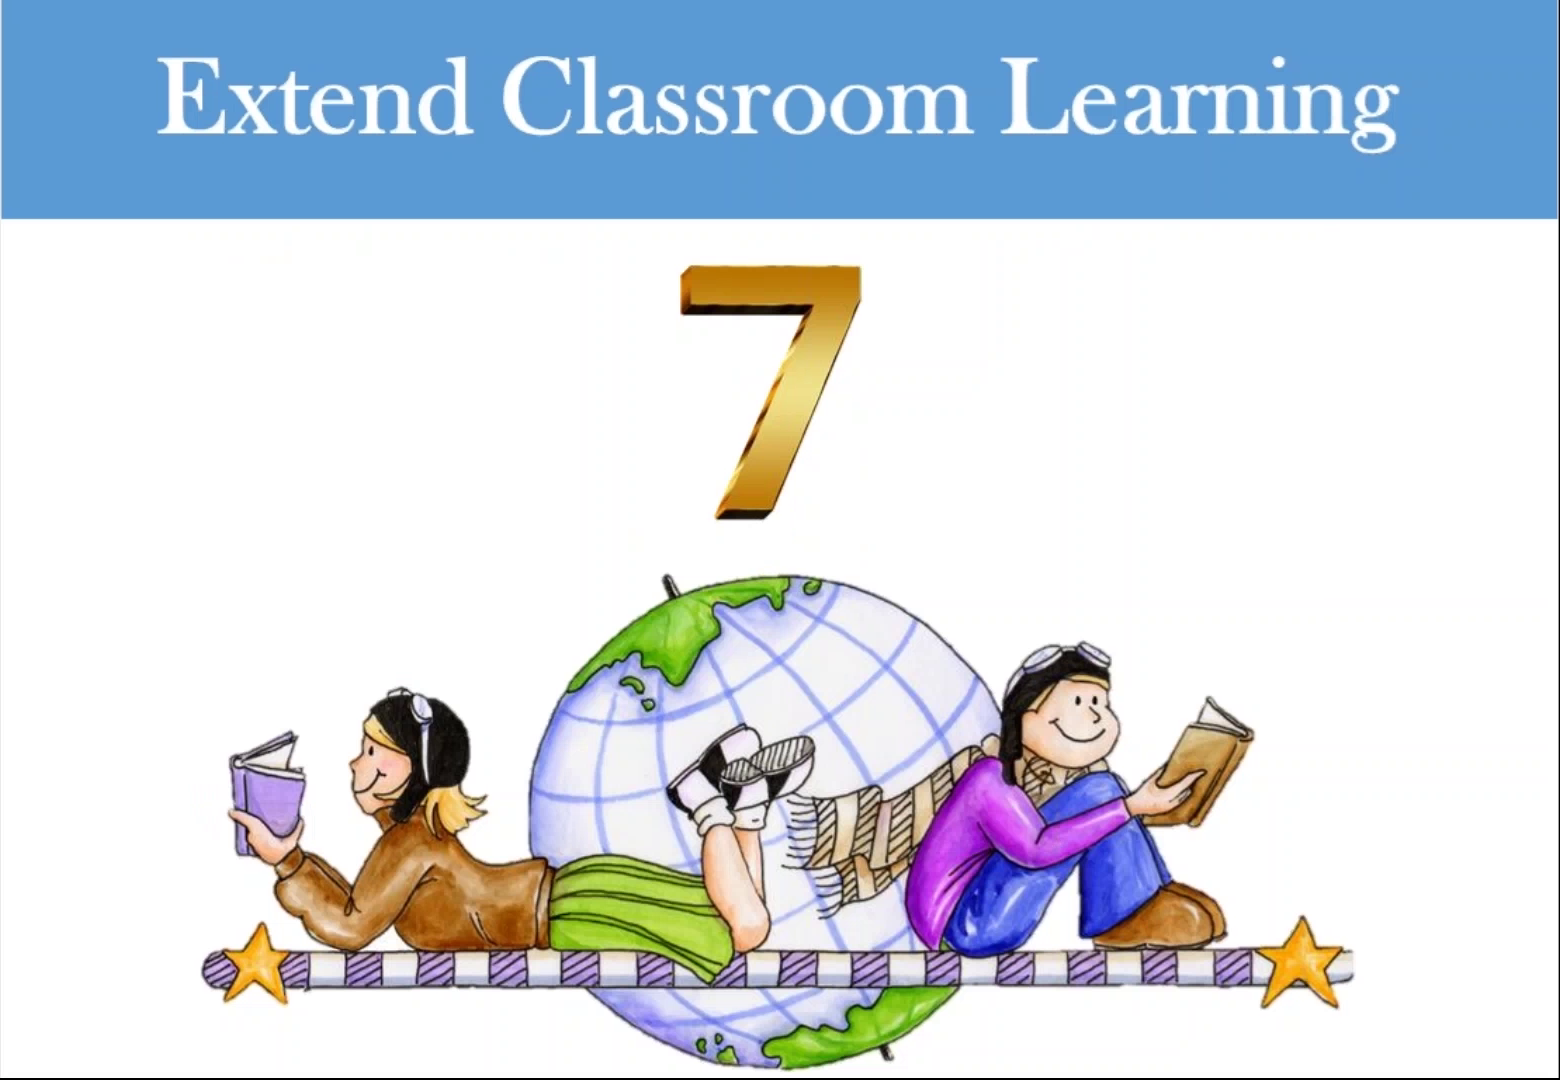 Extending Classroom Learning